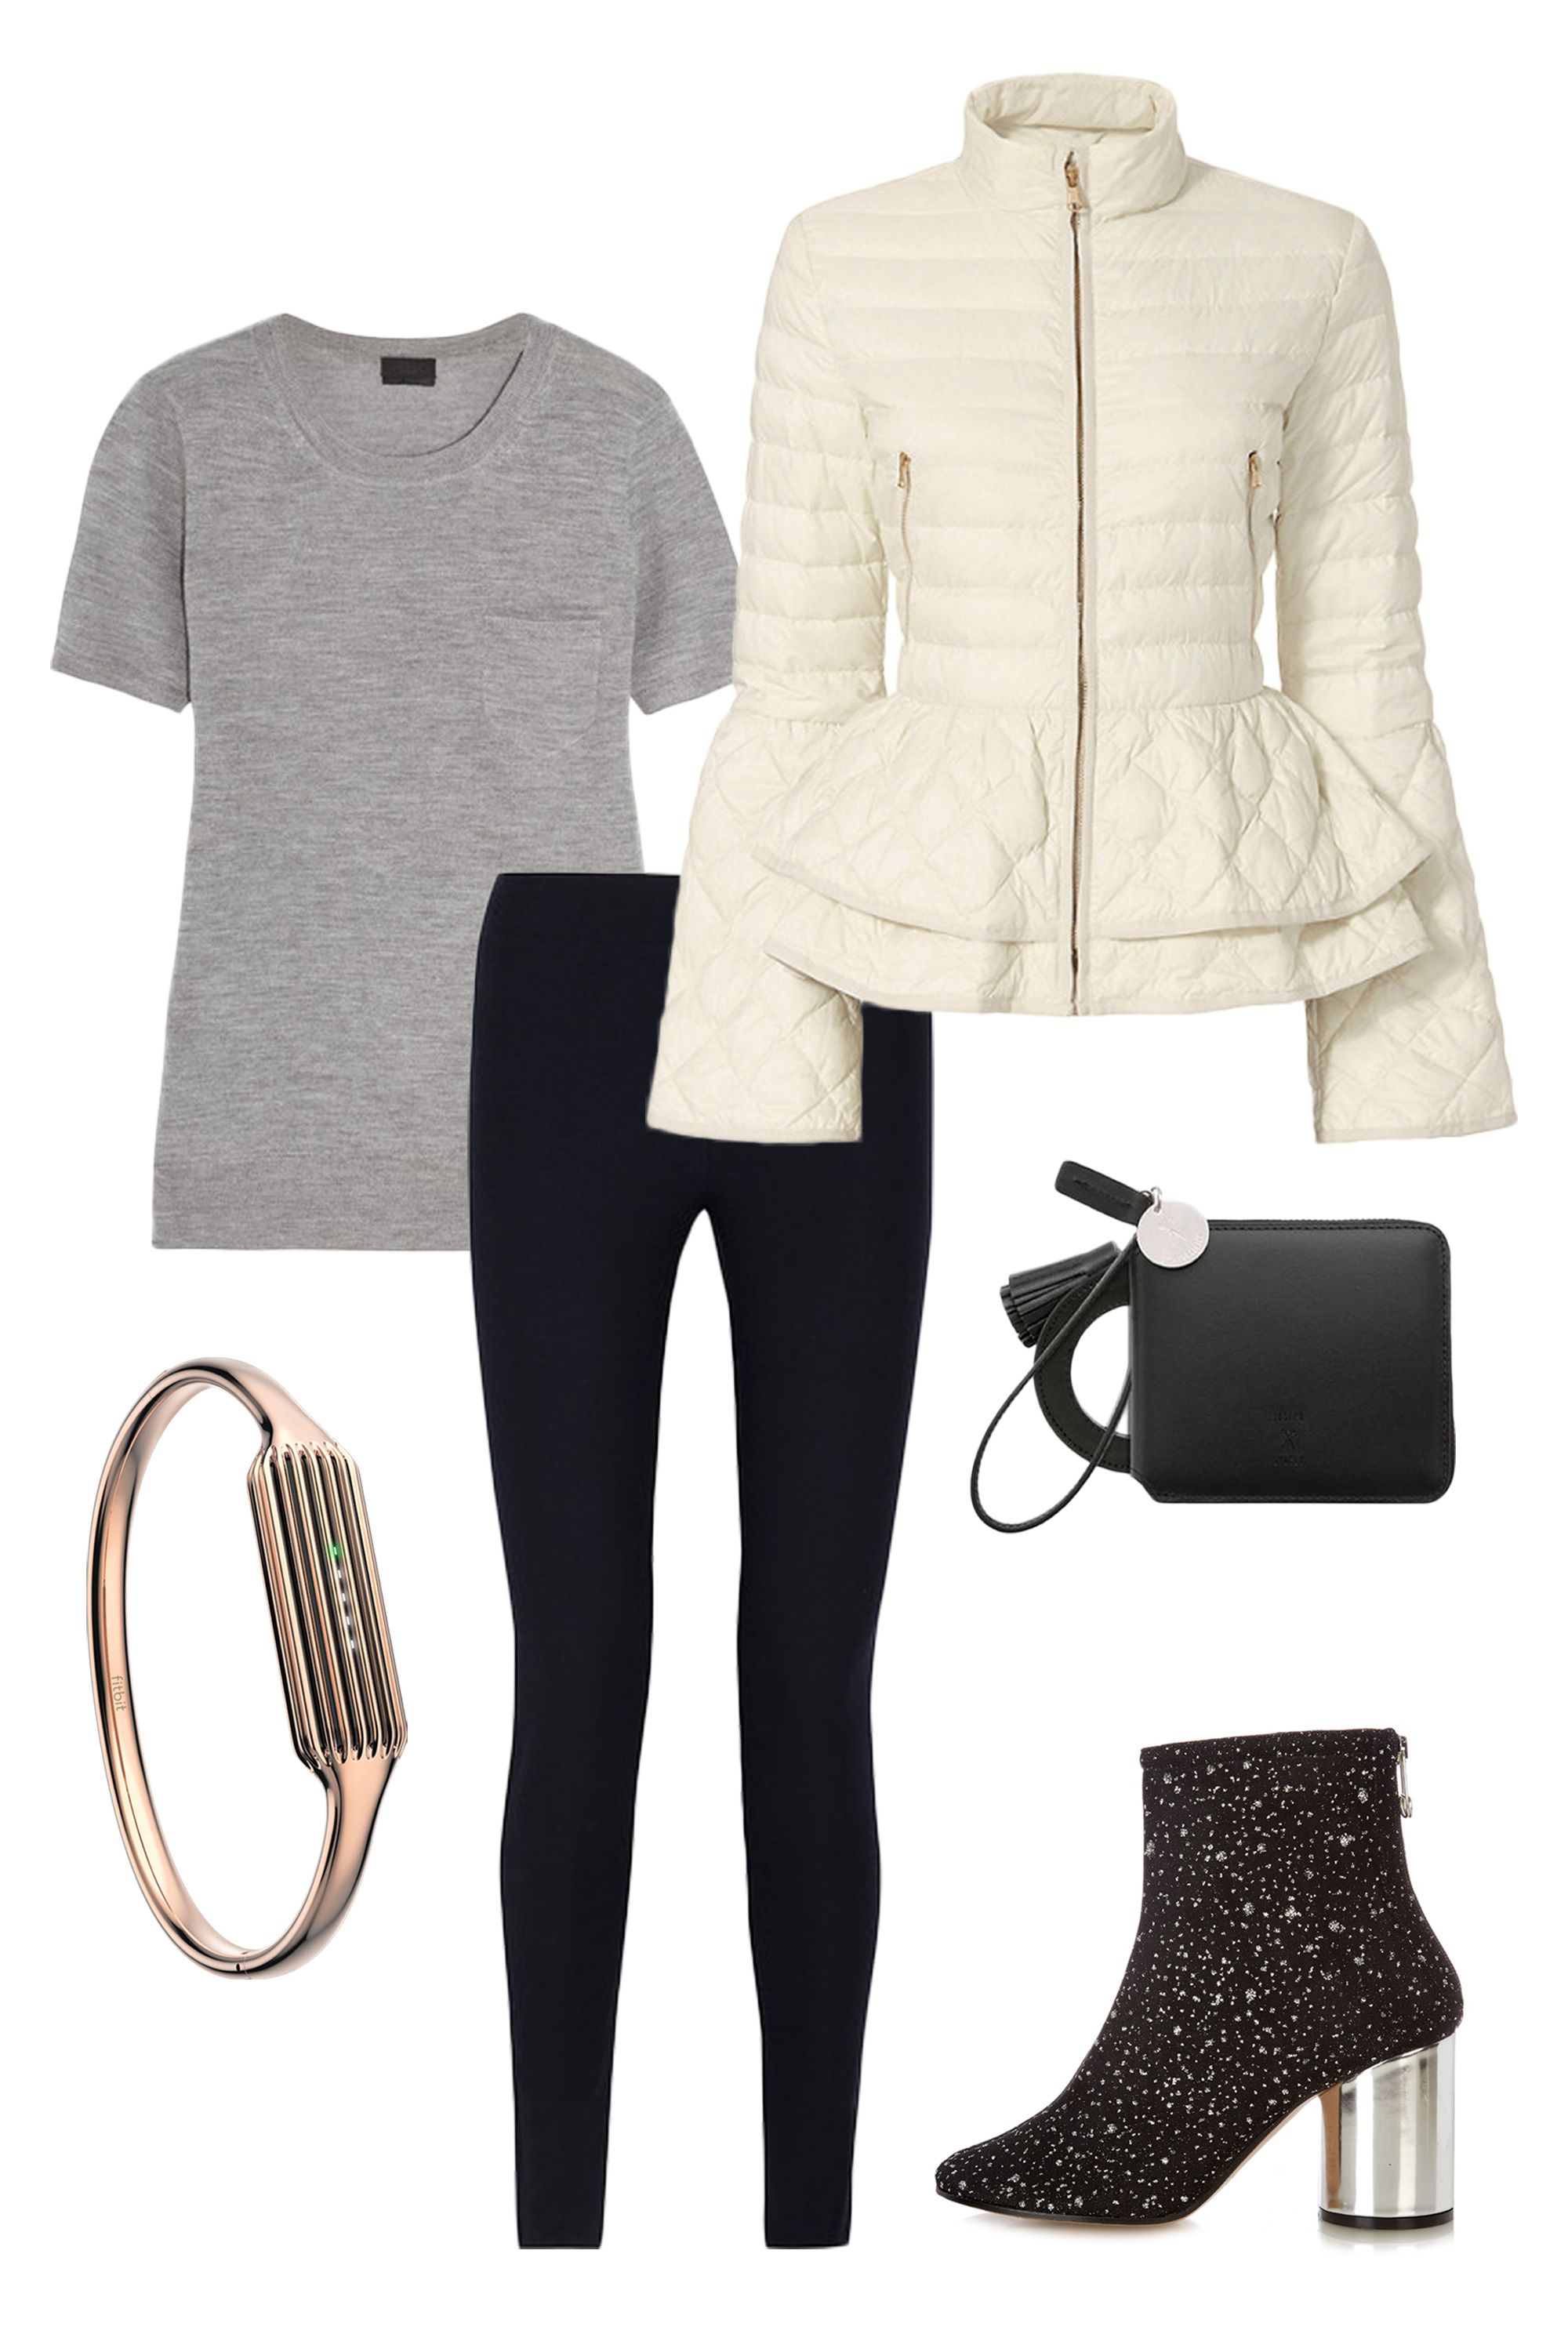 "<p>We've all had those days: tons of errands to run followed by big plans for fun later and no time to change in between. Find the balance between comfy and cool by pairing black leggings with a super soft t-shirt and a statement-making (and waist-whittling) puffer jacket. Sleek accessories—like embellished mid-heel booties, a rose gold Fitbit bracelet, and a miniature wristlet purse—dress everything up just enough without looking too precious. </p><p><em data-redactor-tag=""em"" data-verified=""redactor"">J. Crew Cashmere T-Shirt, $90, <a href=""https://www.net-a-porter.com/us/en/product/665004"" target=""_blank"" data-tracking-id=""recirc-text-link"">net-a-porter.com</a>; Helmut Lang Stretch-Twill Leggings, $119, <a href=""https://www.theoutnet.com/en-US/Shop/Product/Helmut-Lang/Stretch-twill-leggings/766860"" target=""_blank"" data-tracking-id=""recirc-text-link"">theoutnet.com</a>; Elizabeth Roberts Anne Puffer, $695, <a href=""https://www.intermixonline.com/product/elizabeth+roberts+anne+puffer.do?sortby=ourPicks&from=Search&"" target=""_blank"" data-tracking-id=""recirc-text-link"">intermixonline.com</a>; Joseph & Stacey Oz Round Zip Wallet Slim, $118, <a href=""http://us.wconcept.com/oz-round-zip-wallet-slim-mirror-charm-modern-black-23867.html?source=awin&awc=6016_1485480828_bf2723a0505fbce763091299d994f3f7&utm_source=aw&utm_medium=affiliate&utm_campaign=Shopstyle%20US"" target=""_blank"" data-tracking-id=""recirc-text-link"">wconcept.com</a>; Maison Margiela Glitter-Embellished Ankle Boots, $630, <a href=""http://www.matchesfashion.com/us/products/1078867"" target=""_blank"" data-tracking-id=""recirc-text-link"">matchesfashion.com</a>; Fitbit Flex 2 and 22K Rose Gold Plated Bangle Accessory, $100 each, <a href=""https://www.fitbit.com/shop/accessories/flex2-bangle"" target=""_blank"" data-tracking-id=""recirc-text-link"">fitbit.com</a></em><br></p>"